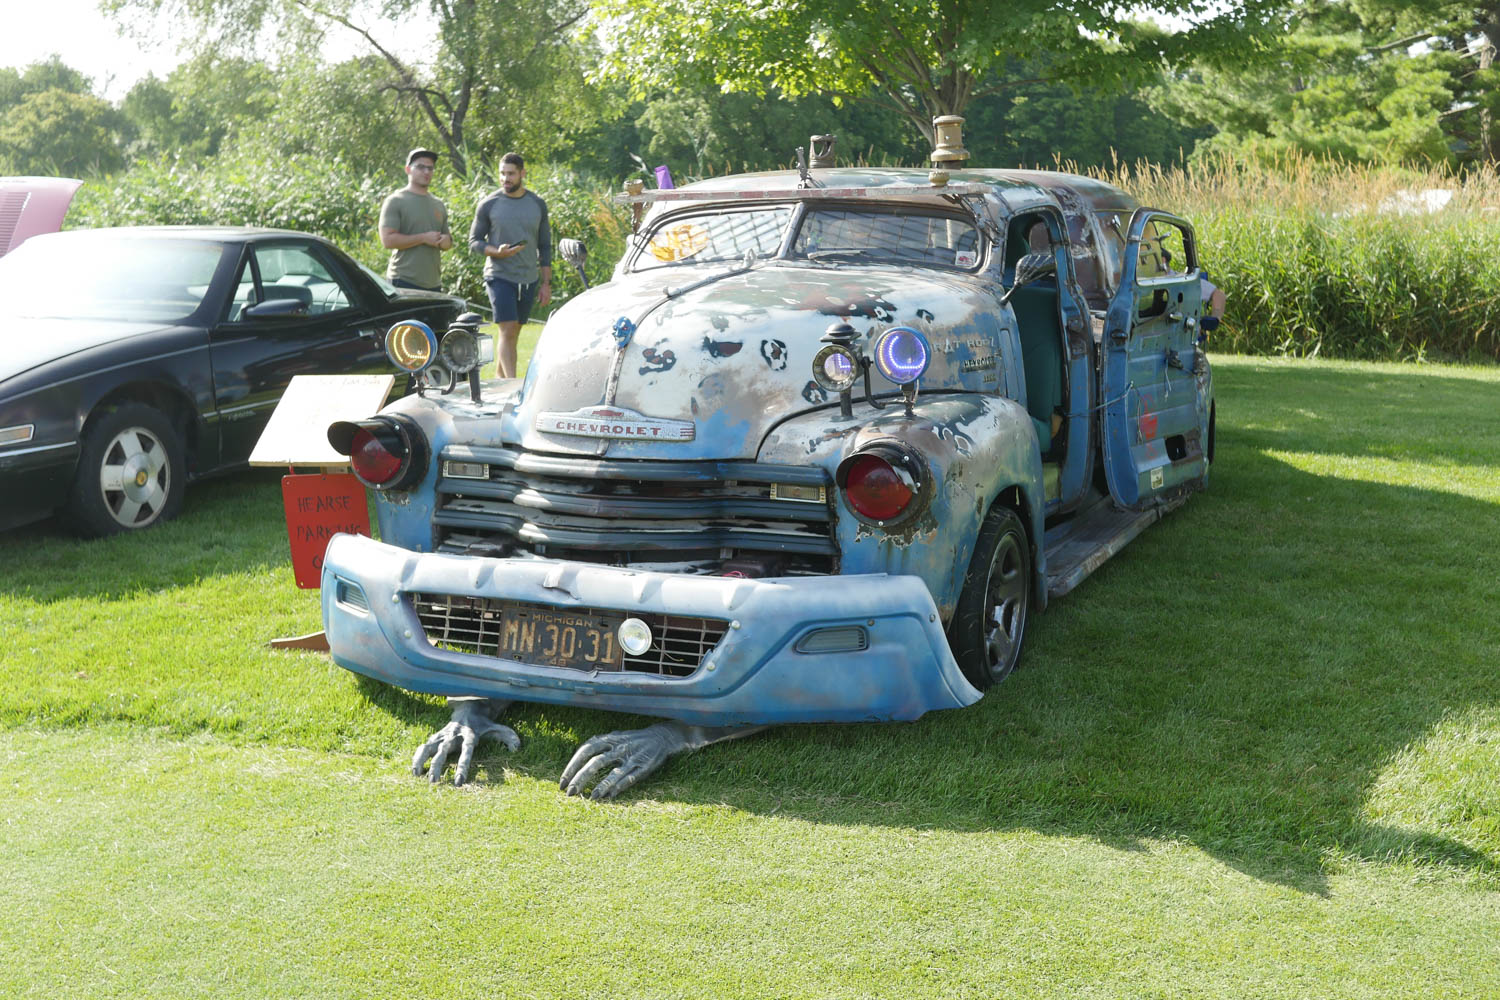 Will Door won Worst of Show at the 2018 Michigan Concours d'Lemons by scaring everyone at the show with his 1949/50 Rat Rod Truck/Hearse.